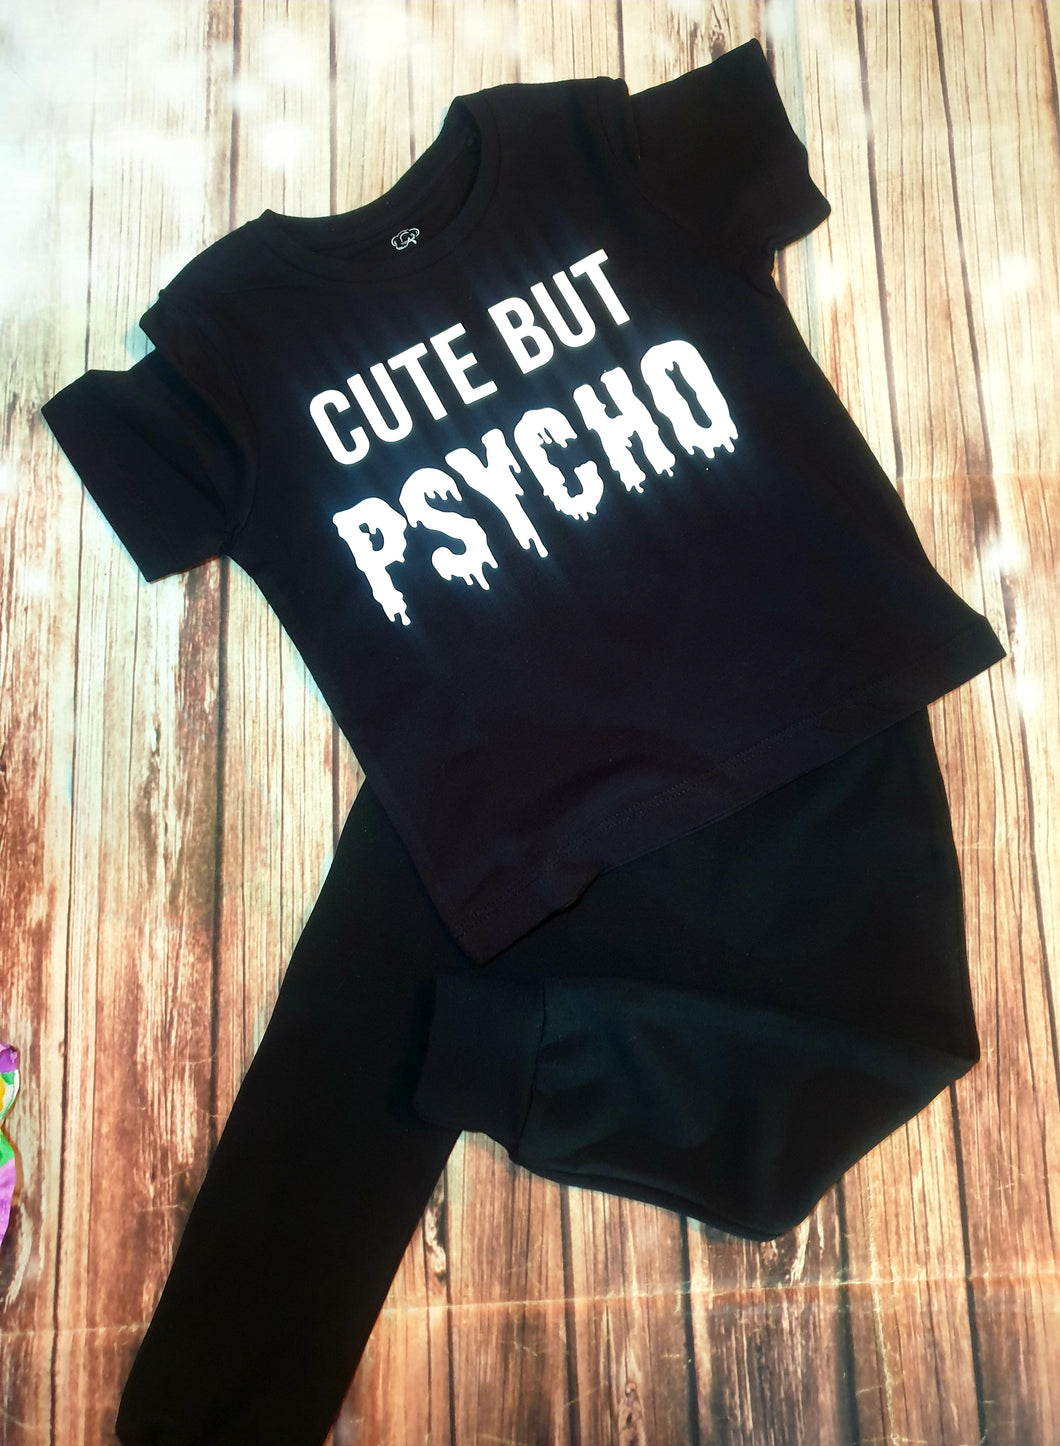 Cute But Psycho Black And White Tshirt - Pitter Patter Baby Boutique